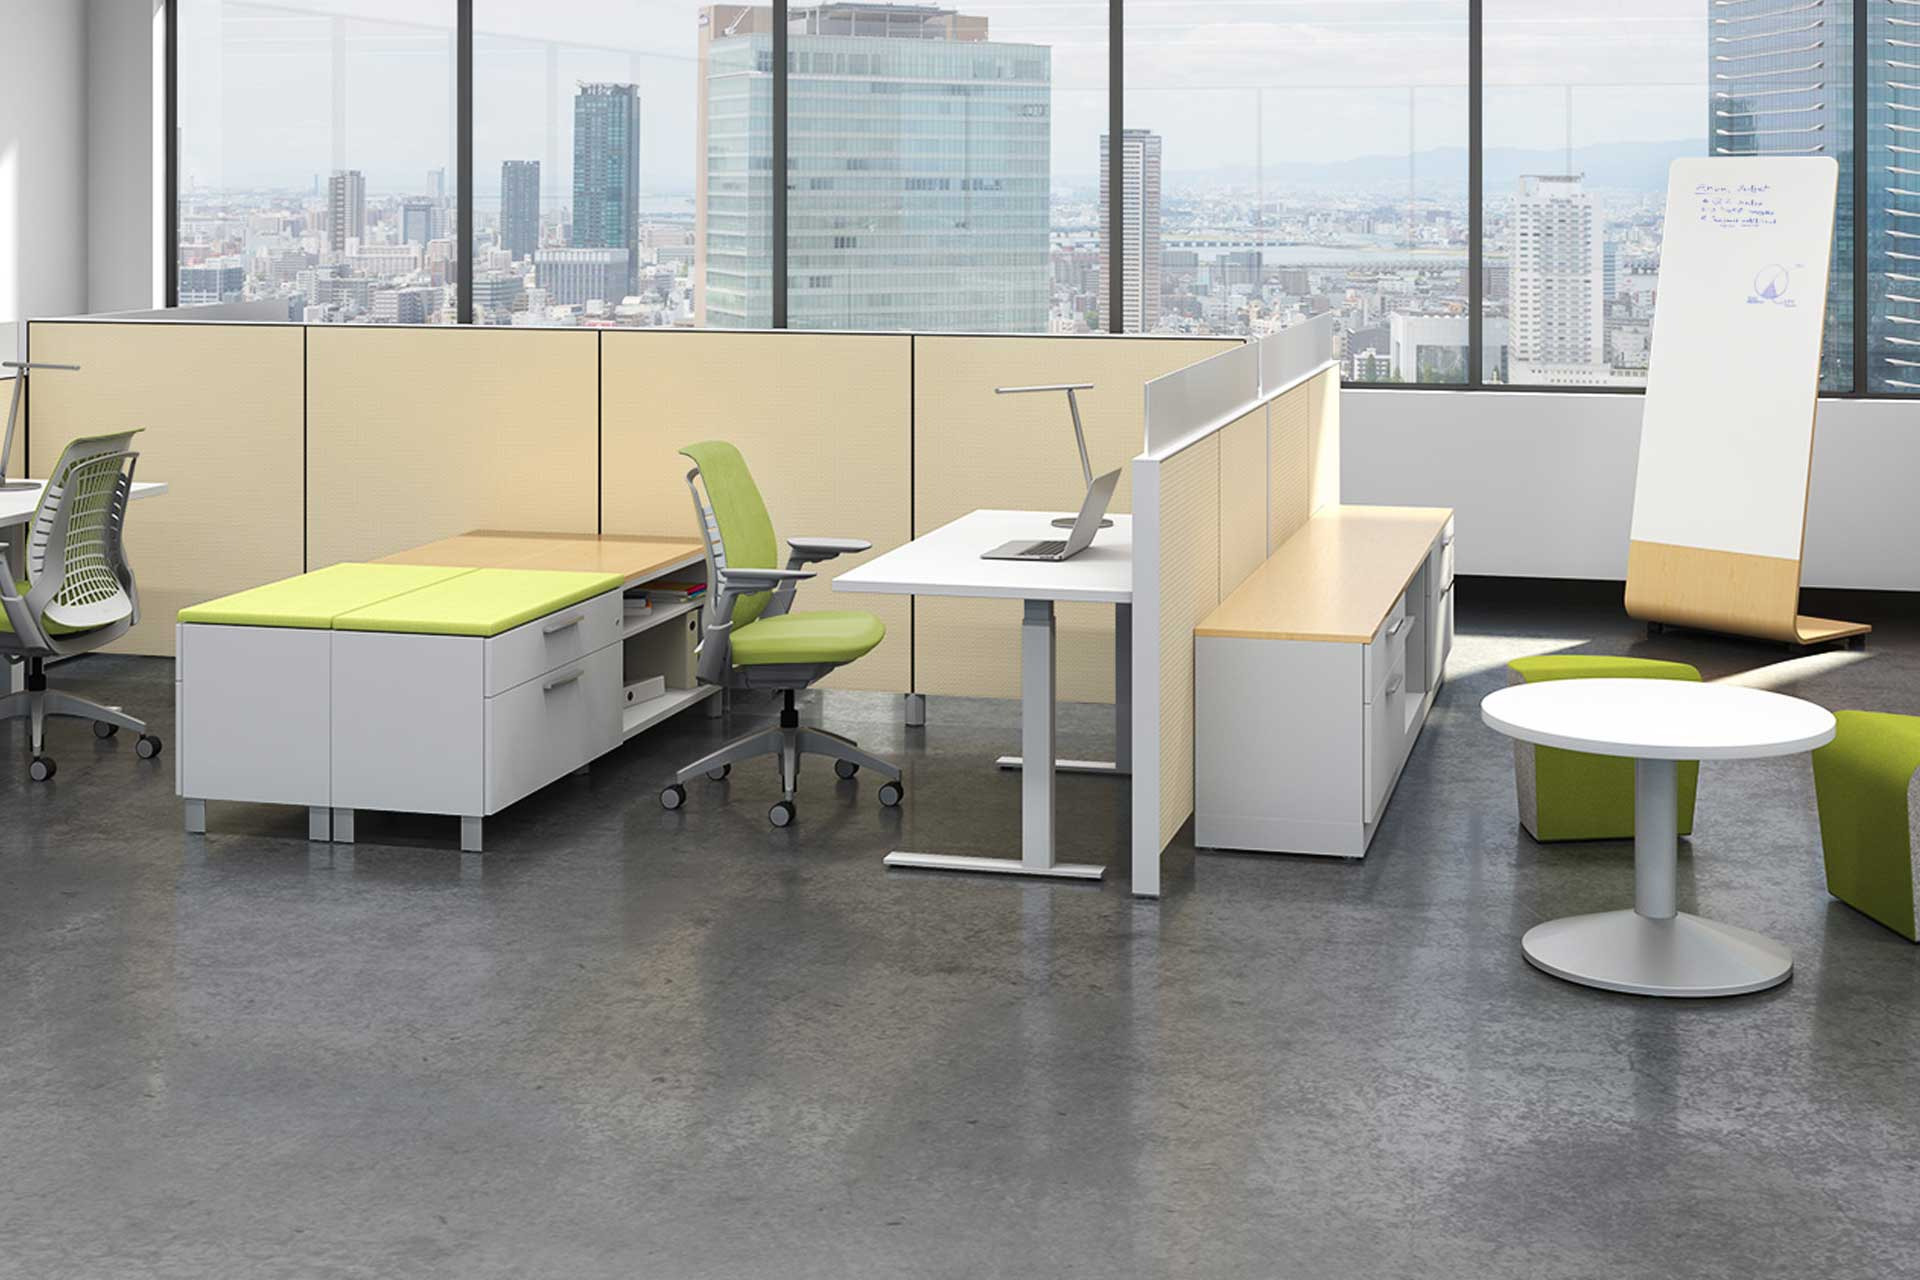 Modern office featuring lime green, wood, and white furniture